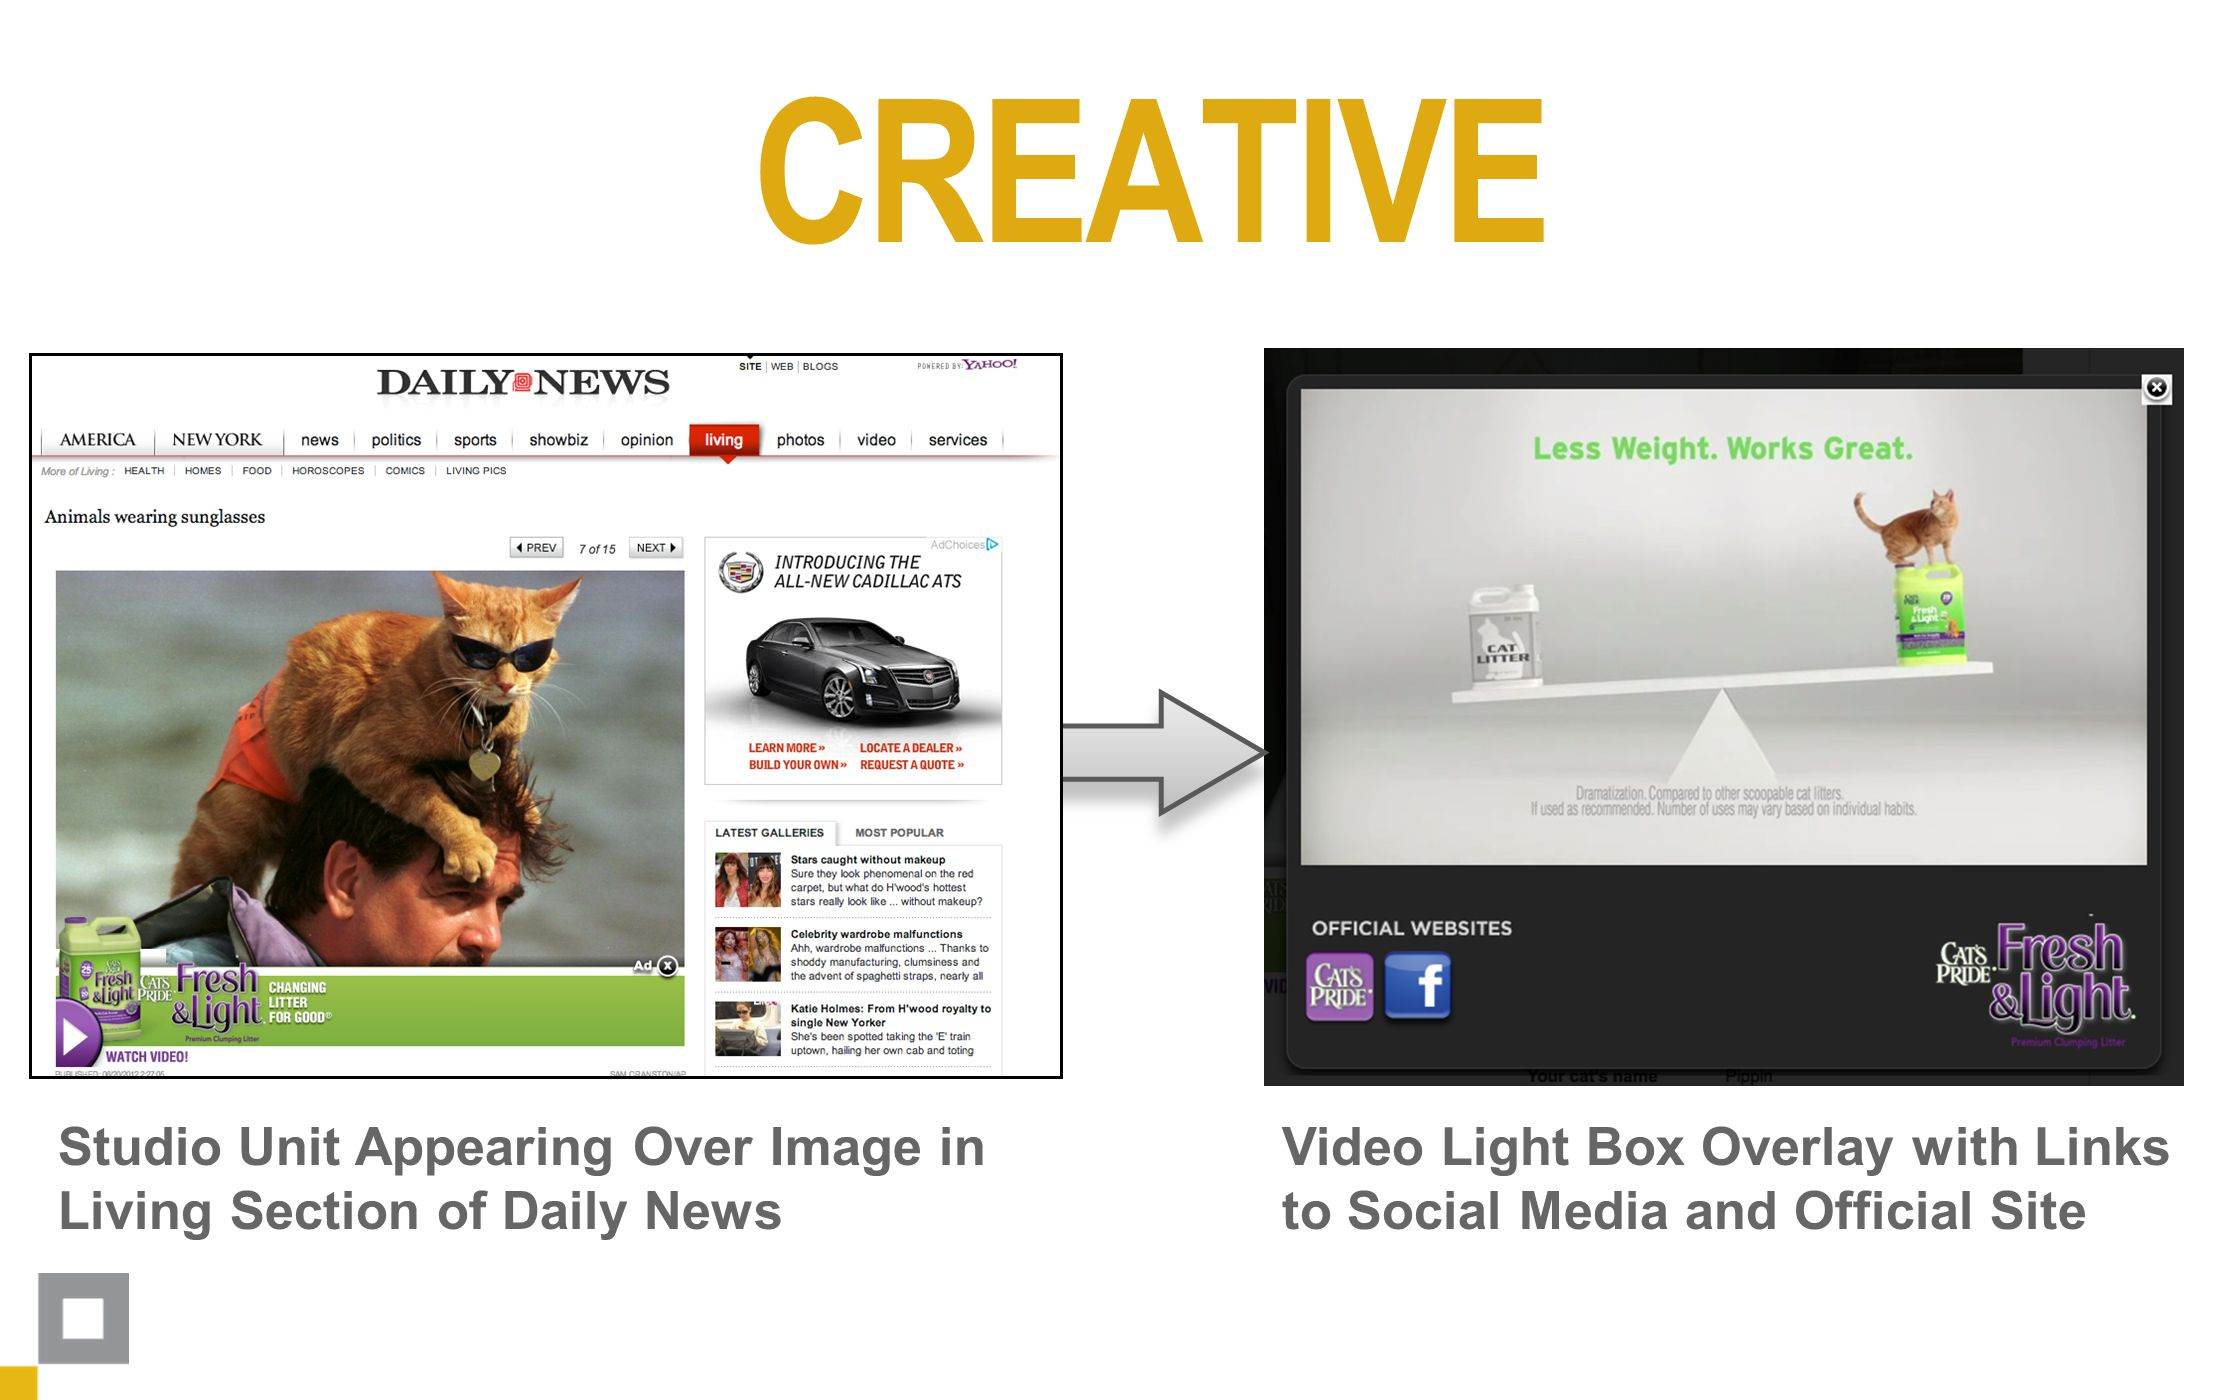 Video Light Box Overlay with Links to Social Media and Official Site Studio Unit Appearing Over Image in Living Section of Daily News